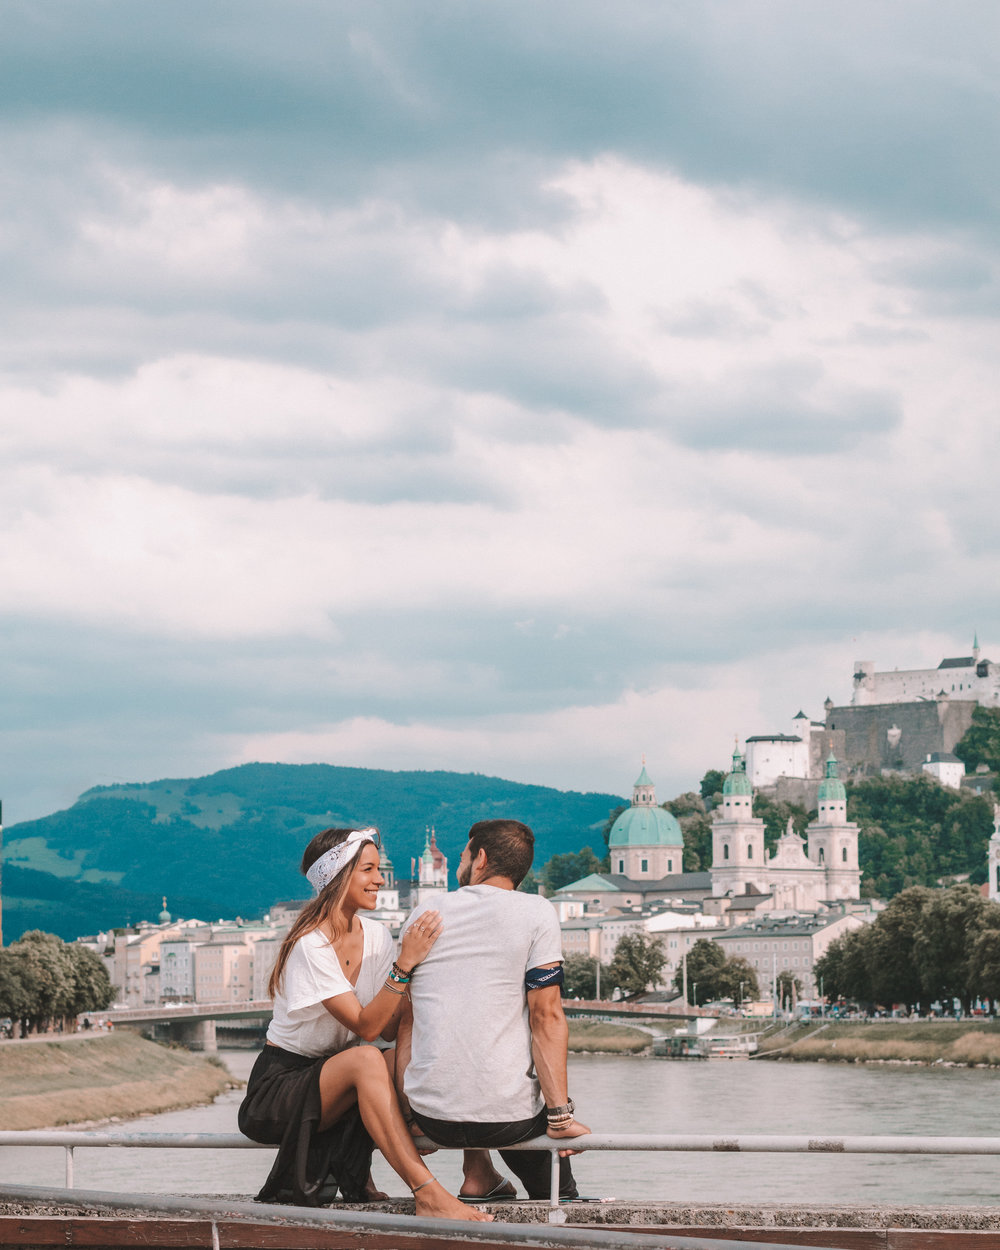 best sunset photos places instagram travel couple beautiful interrail europe city views freeoversea salzburg